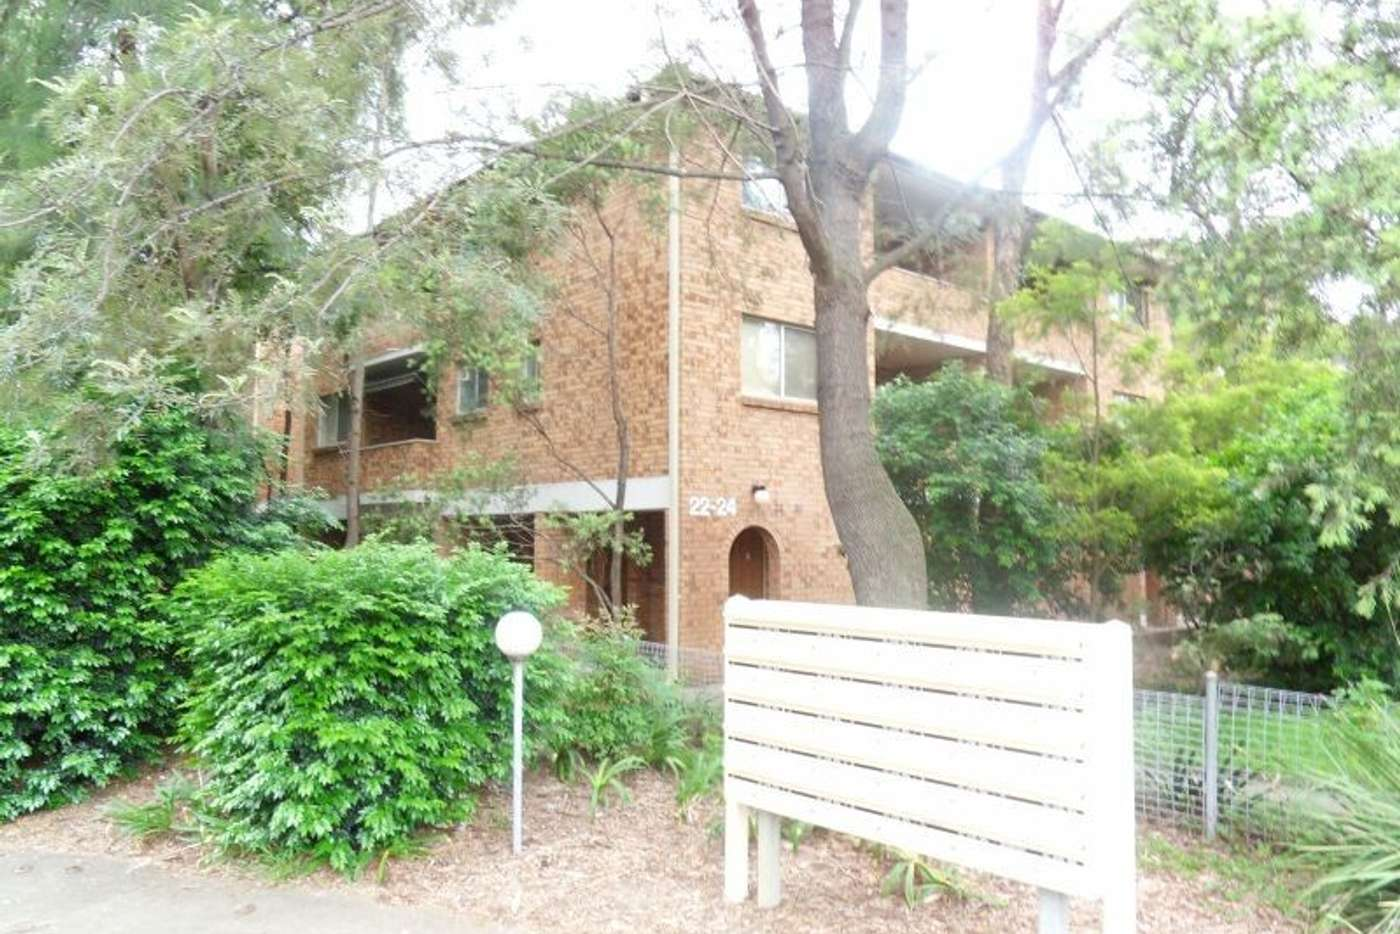 Main view of Homely apartment listing, 2/22-24 Thomas Street, Parramatta NSW 2150